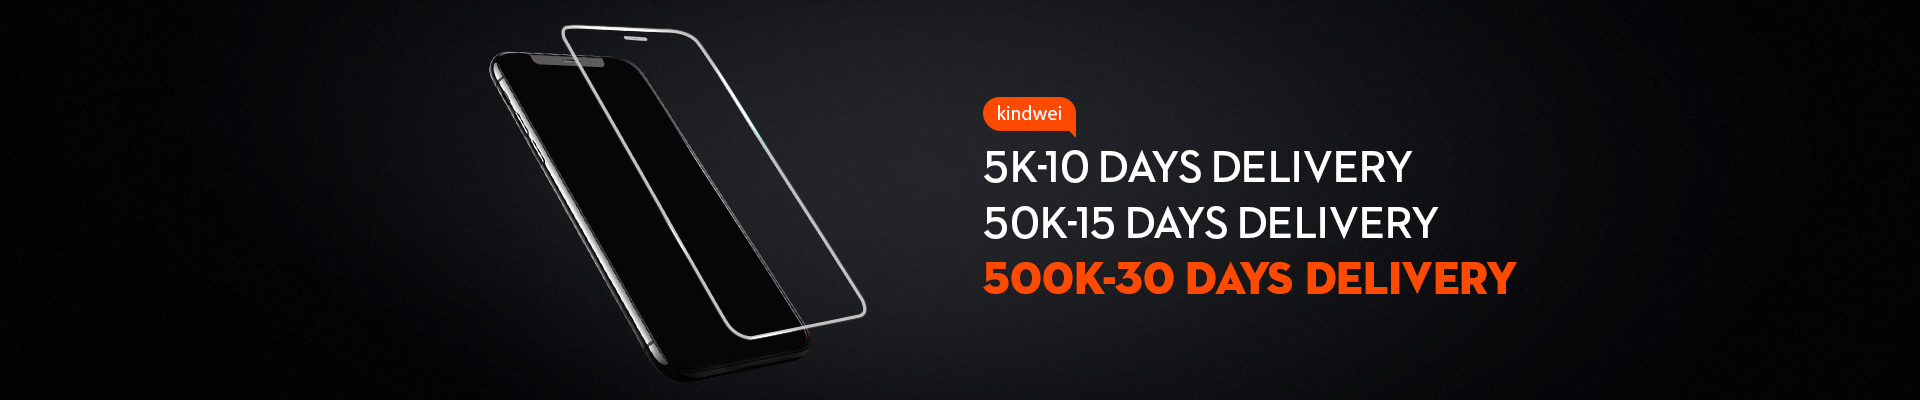 500K-30 DAYS DELIVERY